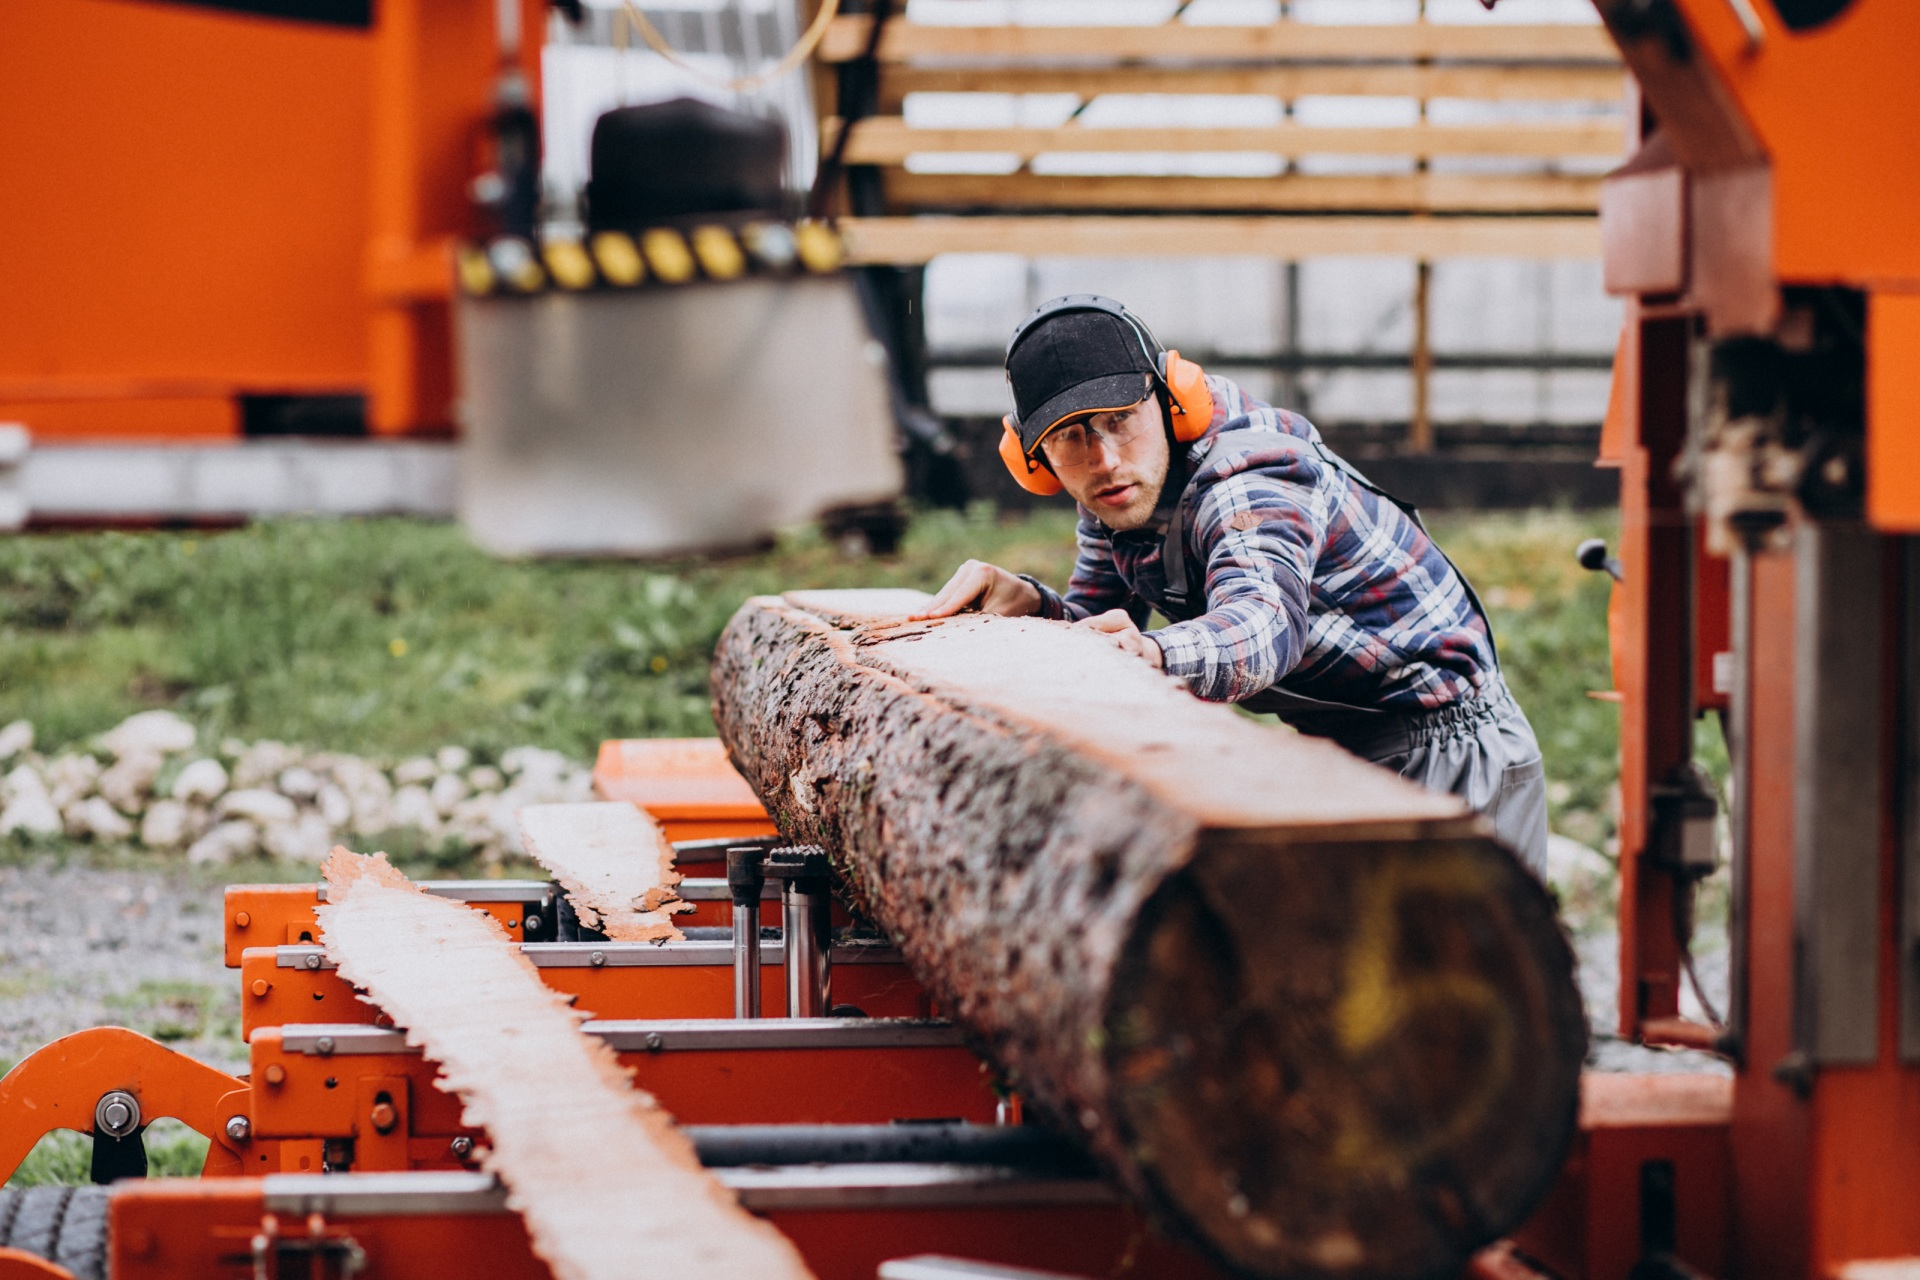 carpenter-working-on-a-sawmill-on-a-wood-manufacture.jpeg